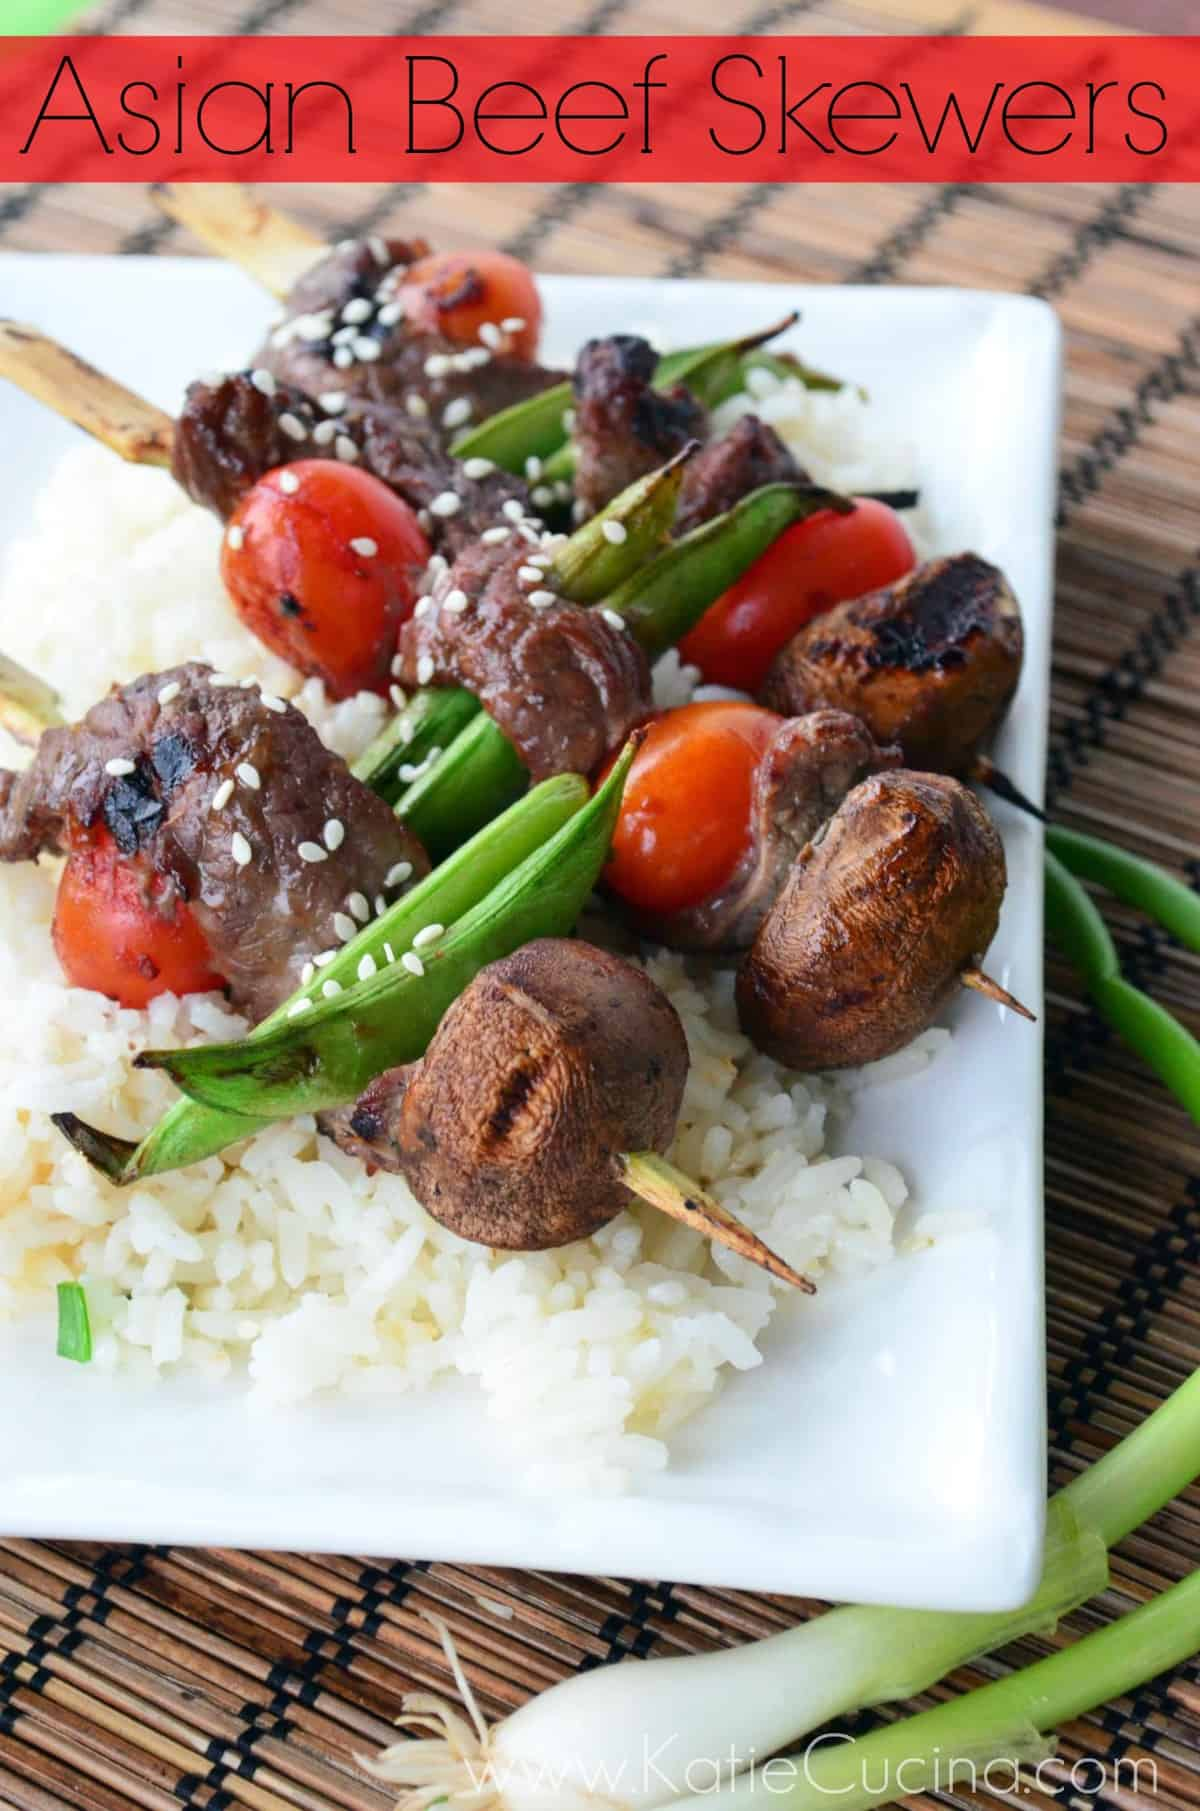 Asian Beef Skewers from KatiesCucina.com #grilling #FlavorsOfSummer